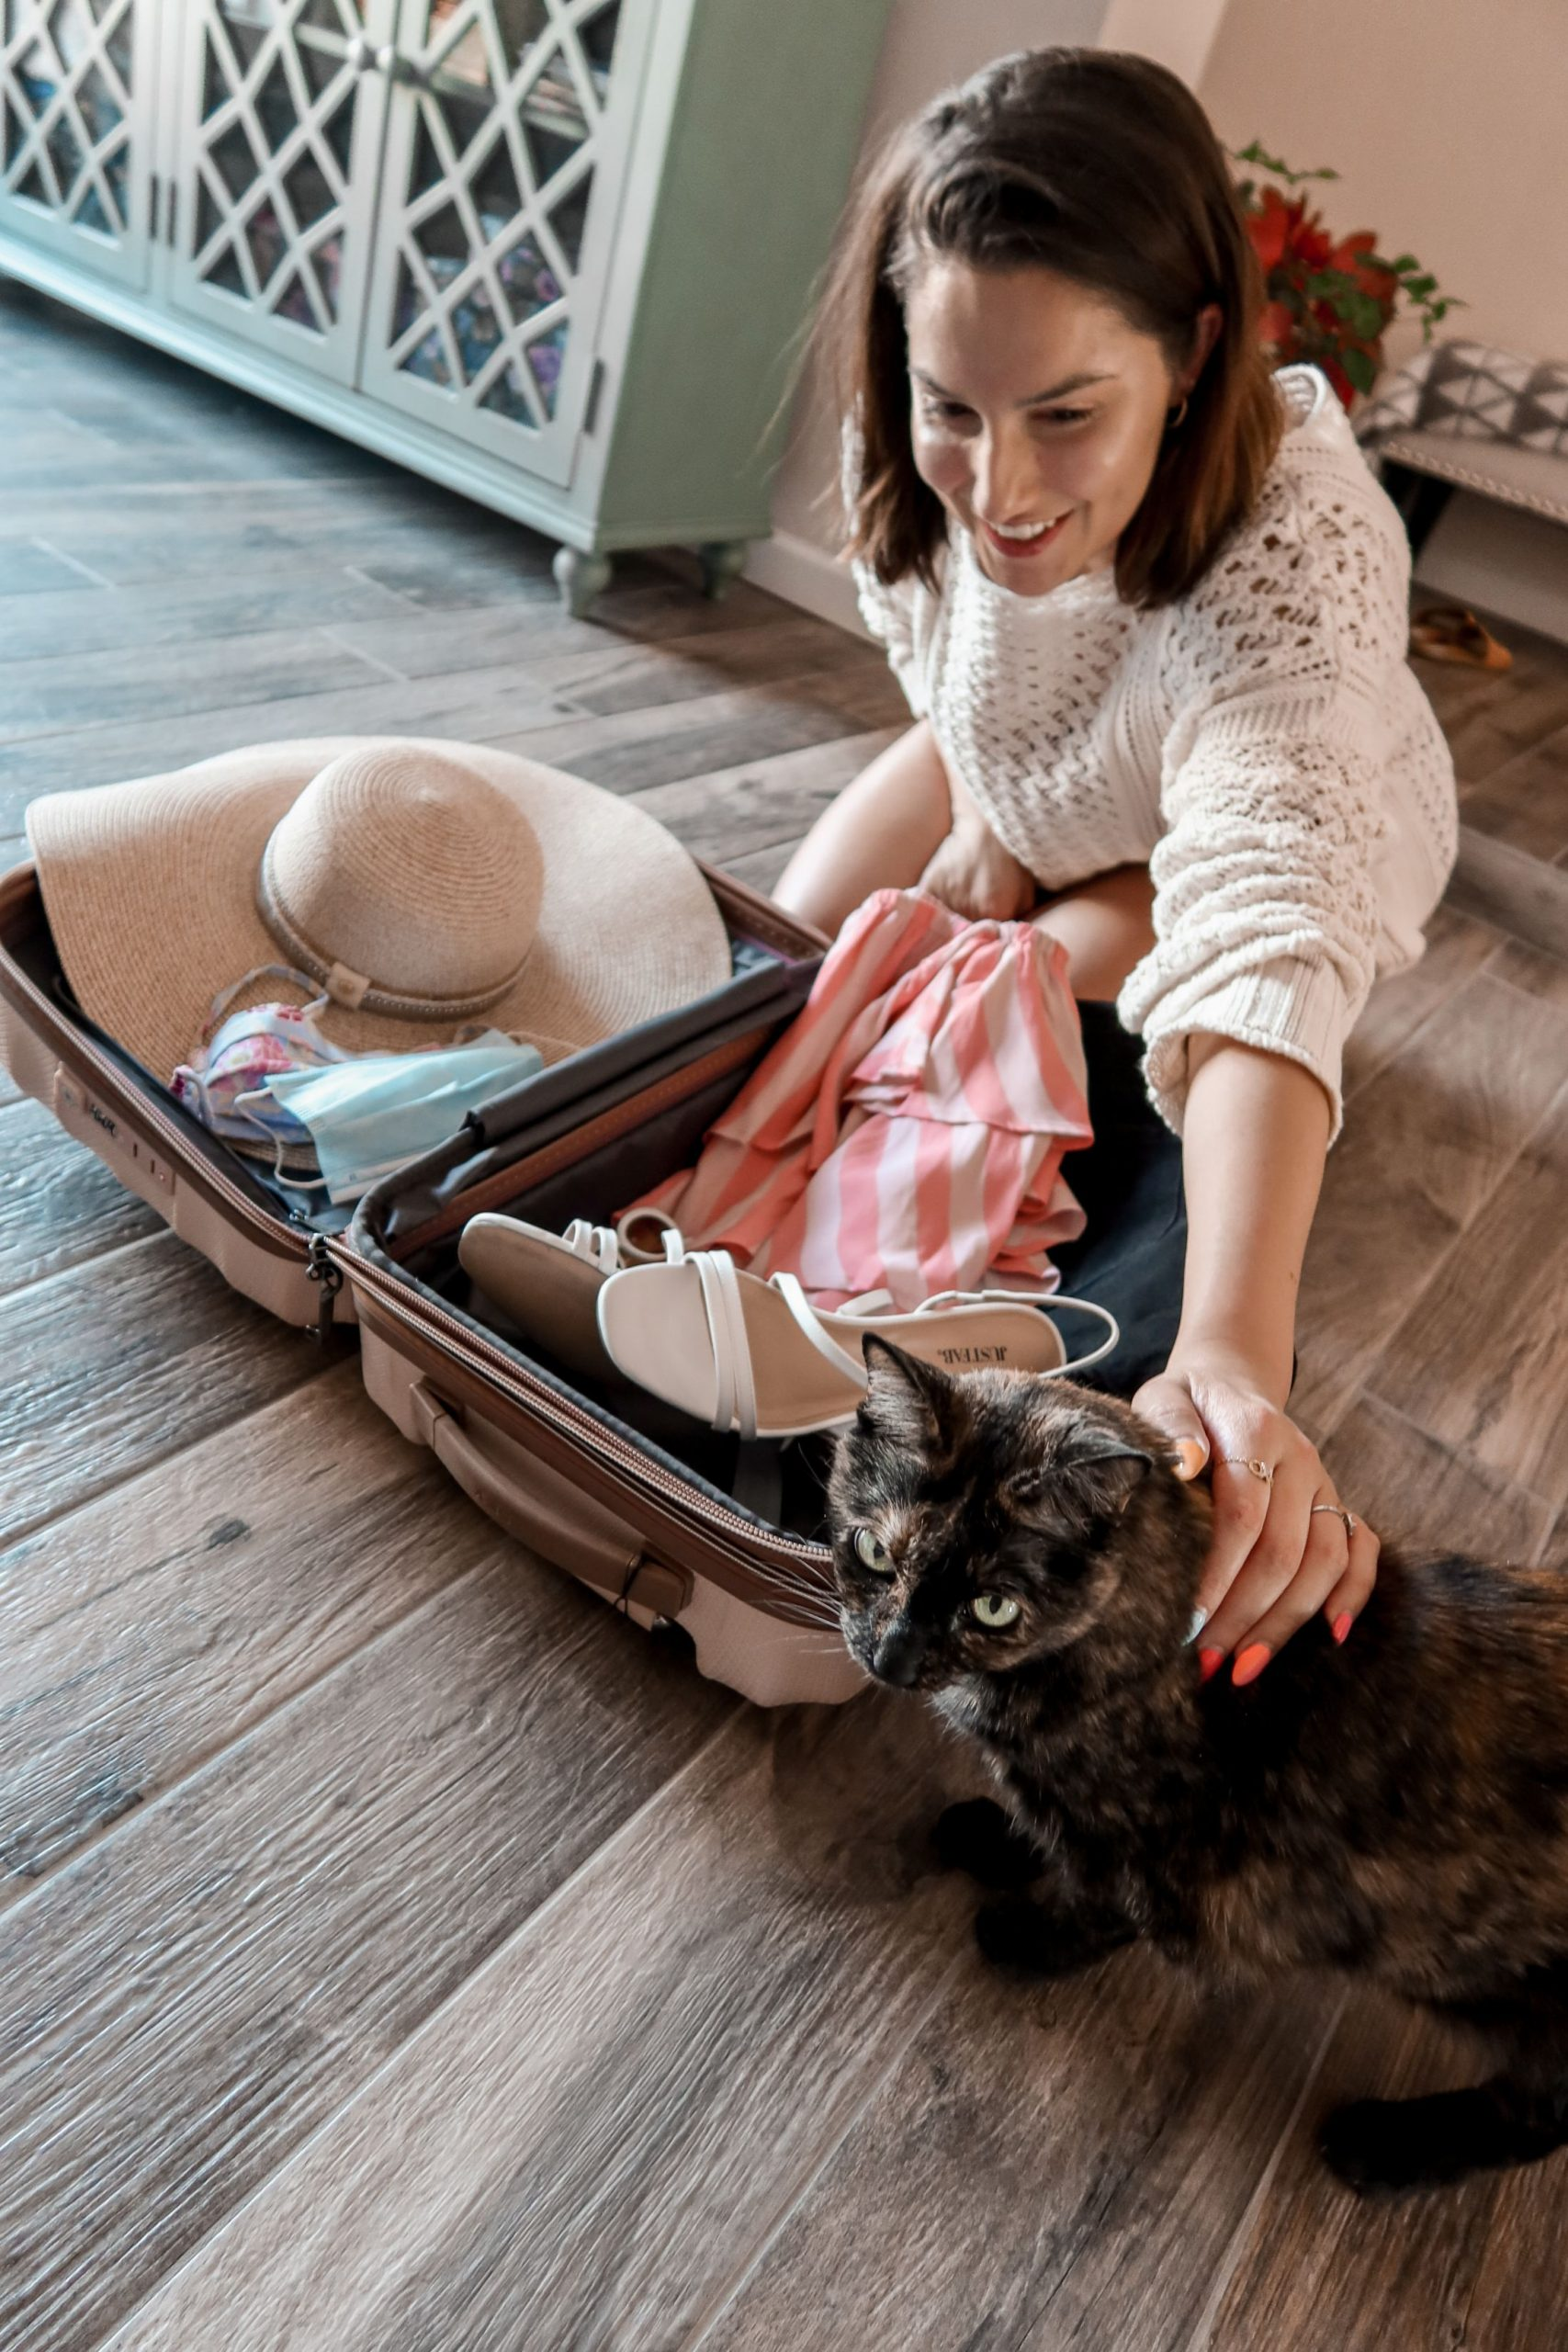 Adaleta Avdic is petting her tortoiseshell cat while packing for her trip post COVID lockdown.